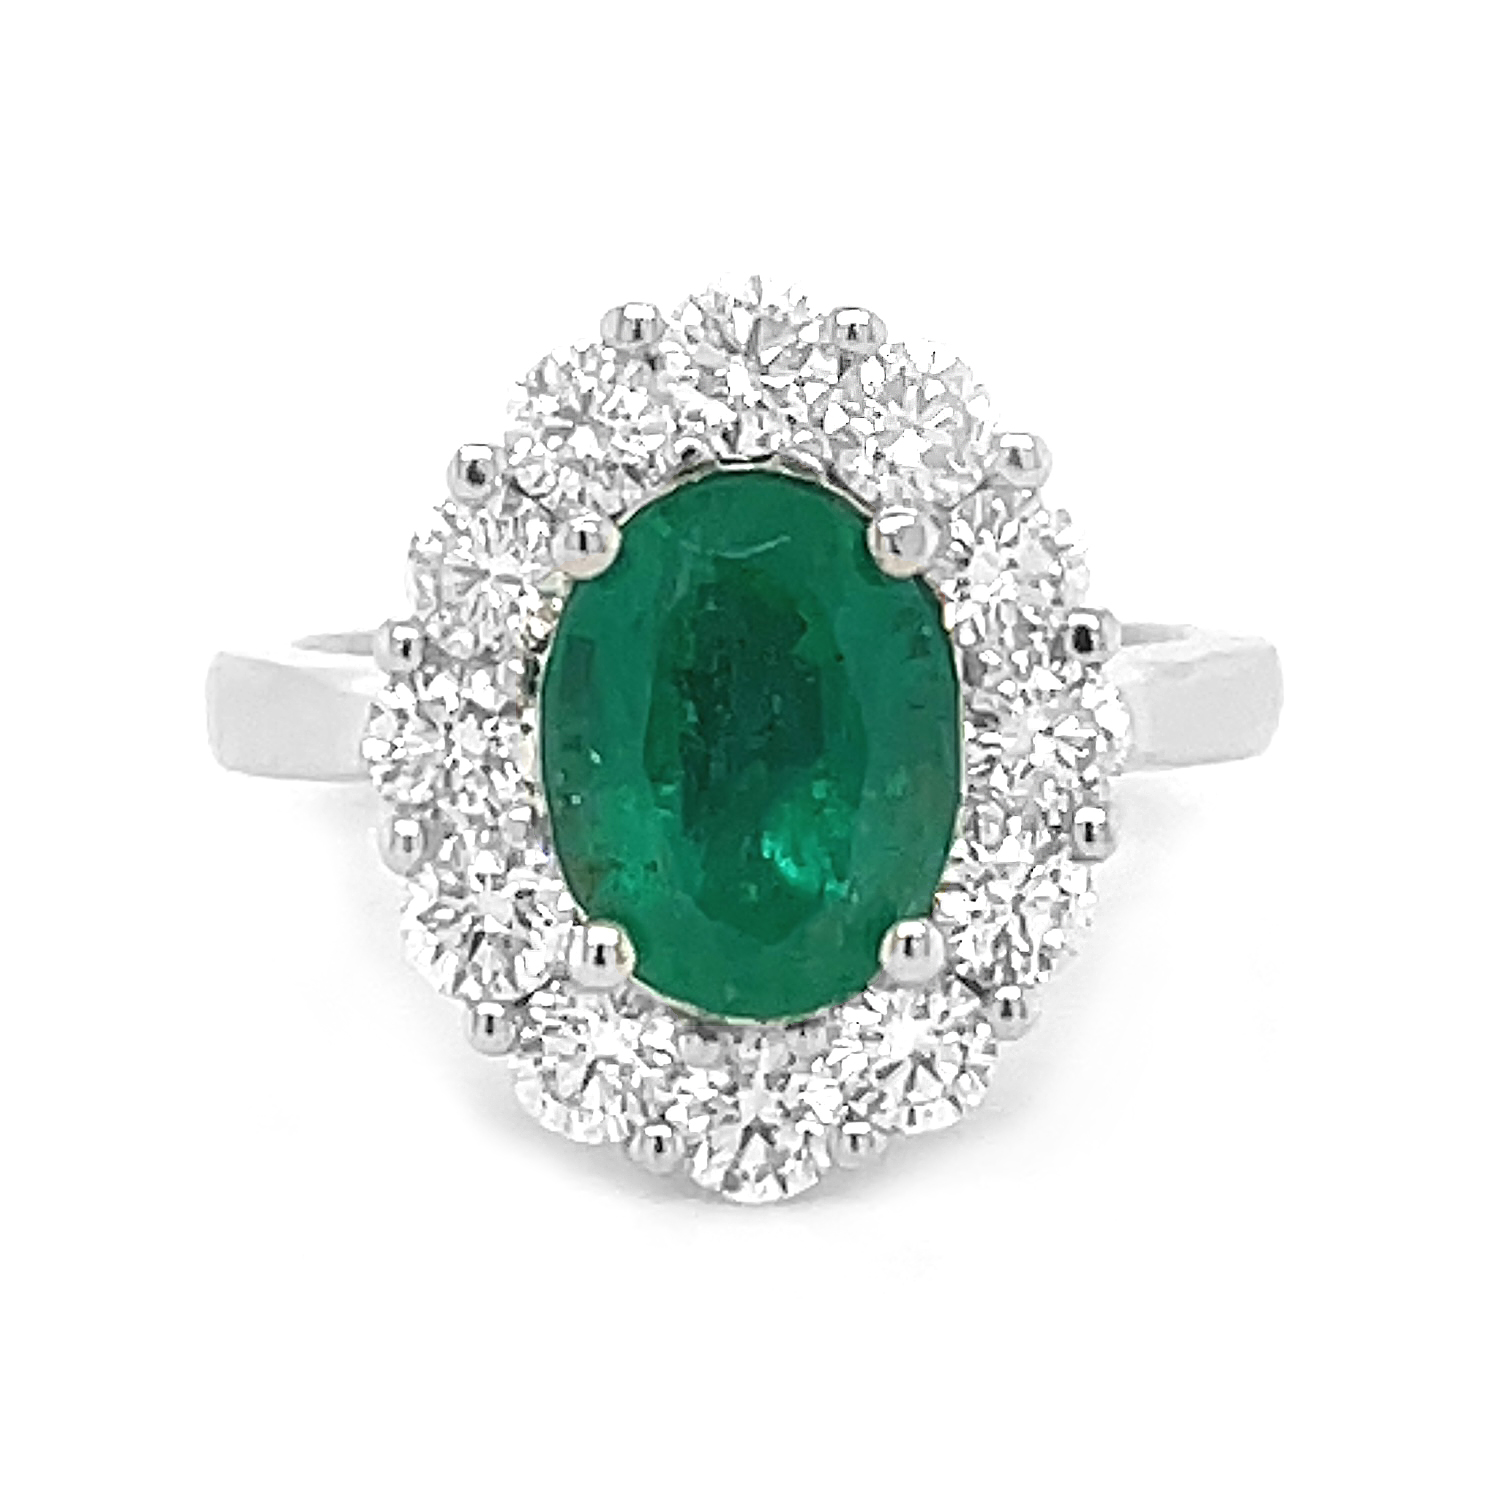 18k White Gold 1.88cts Oval Emerald & Diamond Cluster Ring